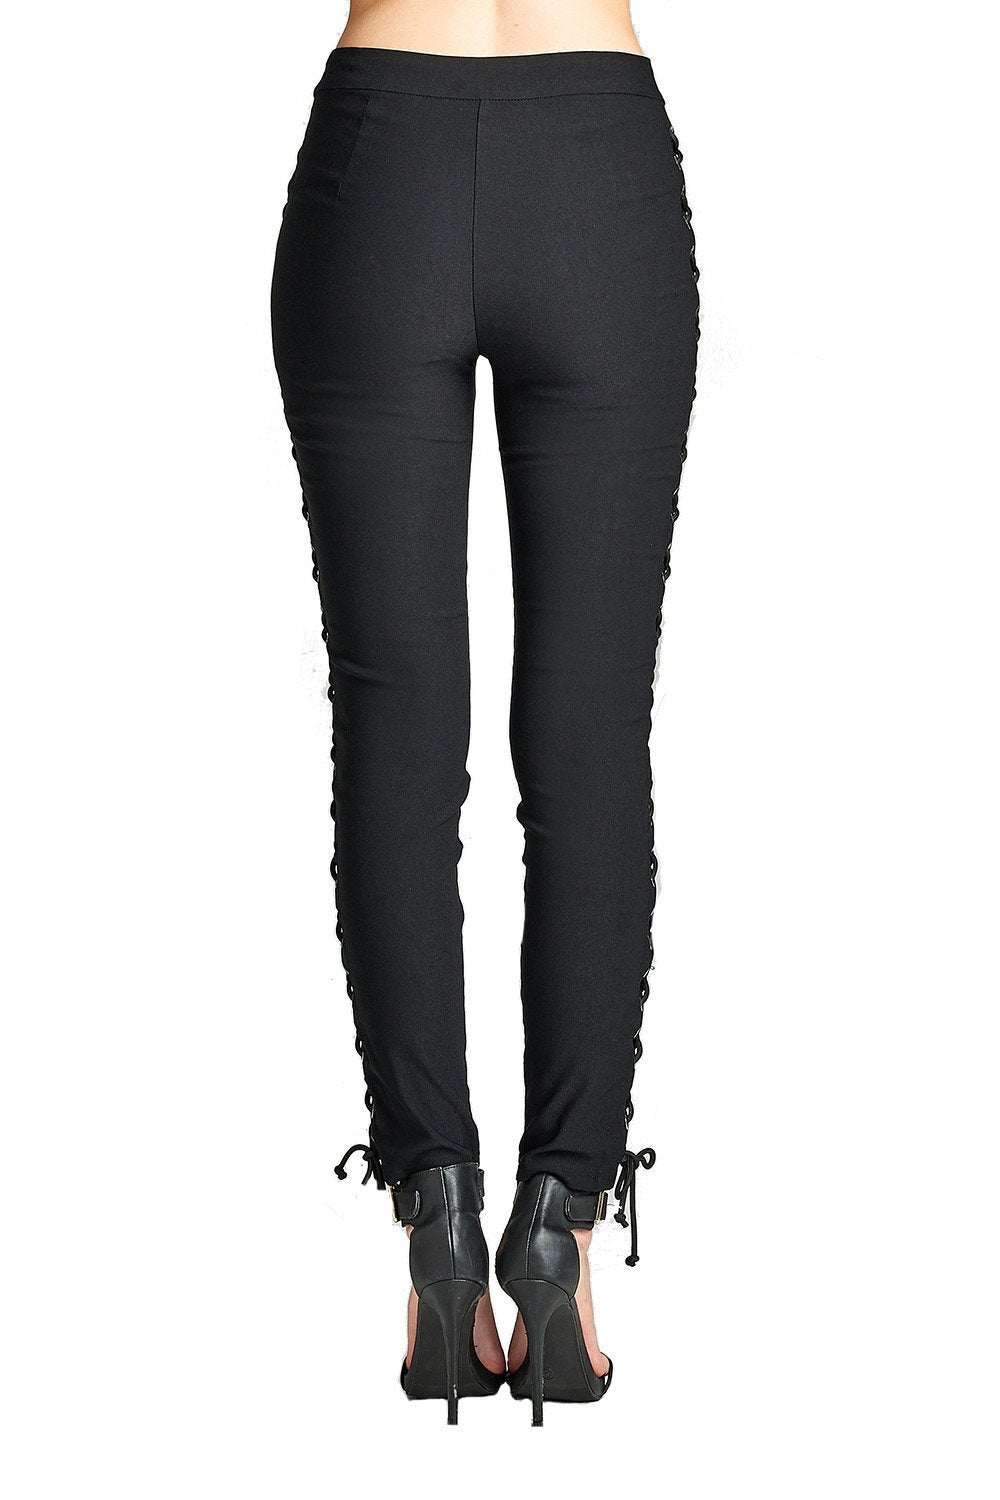 Plain Stretch High Rise Waist Side Lace Up Front Single Button Long Skinny Legging Pants